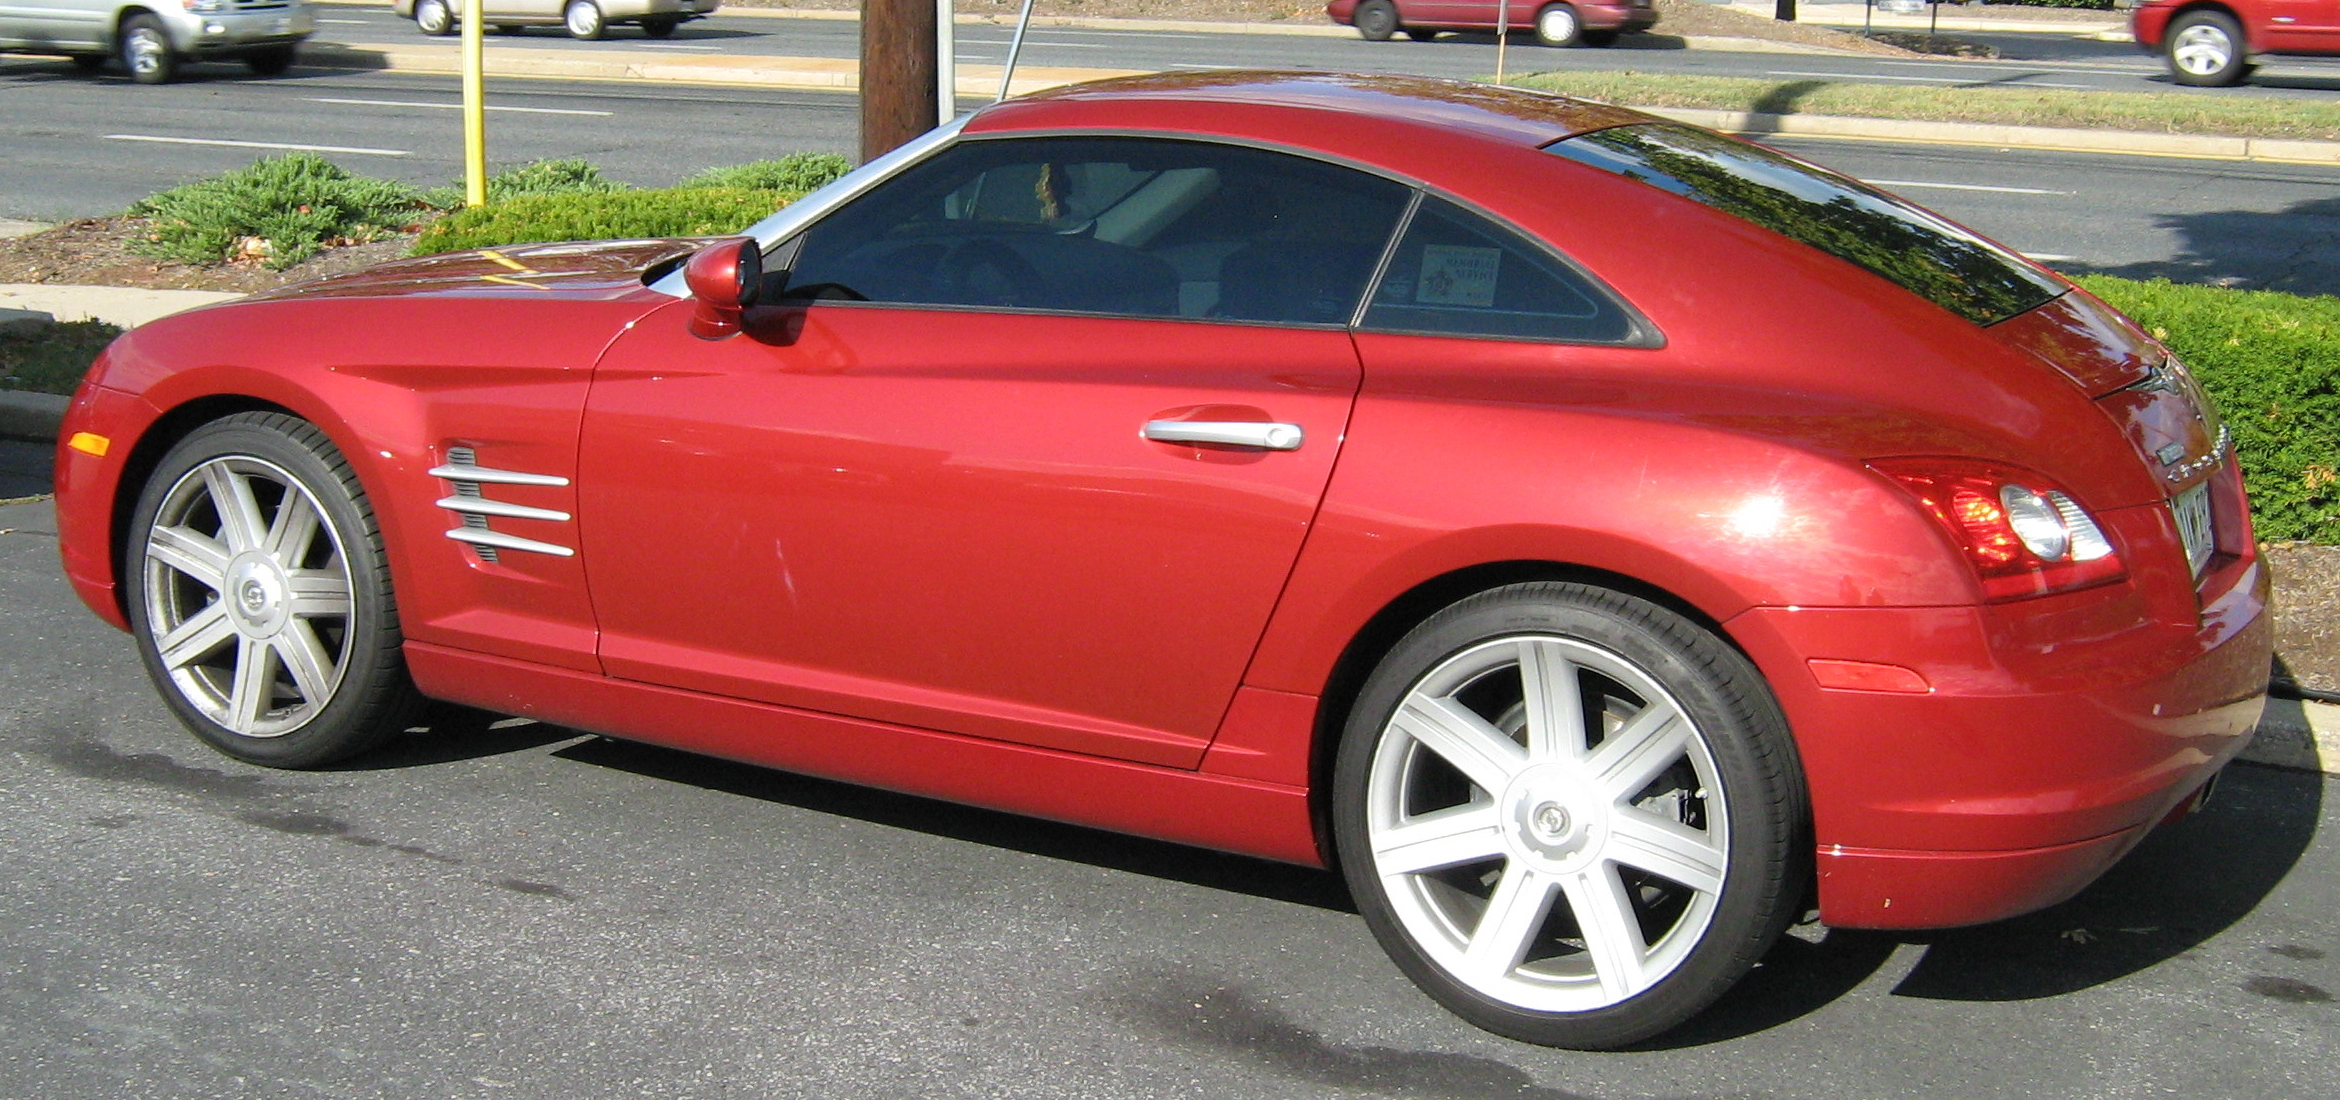 File:Chrysler Crossfire Red Coupe2.JPG - Wikimedia Commons